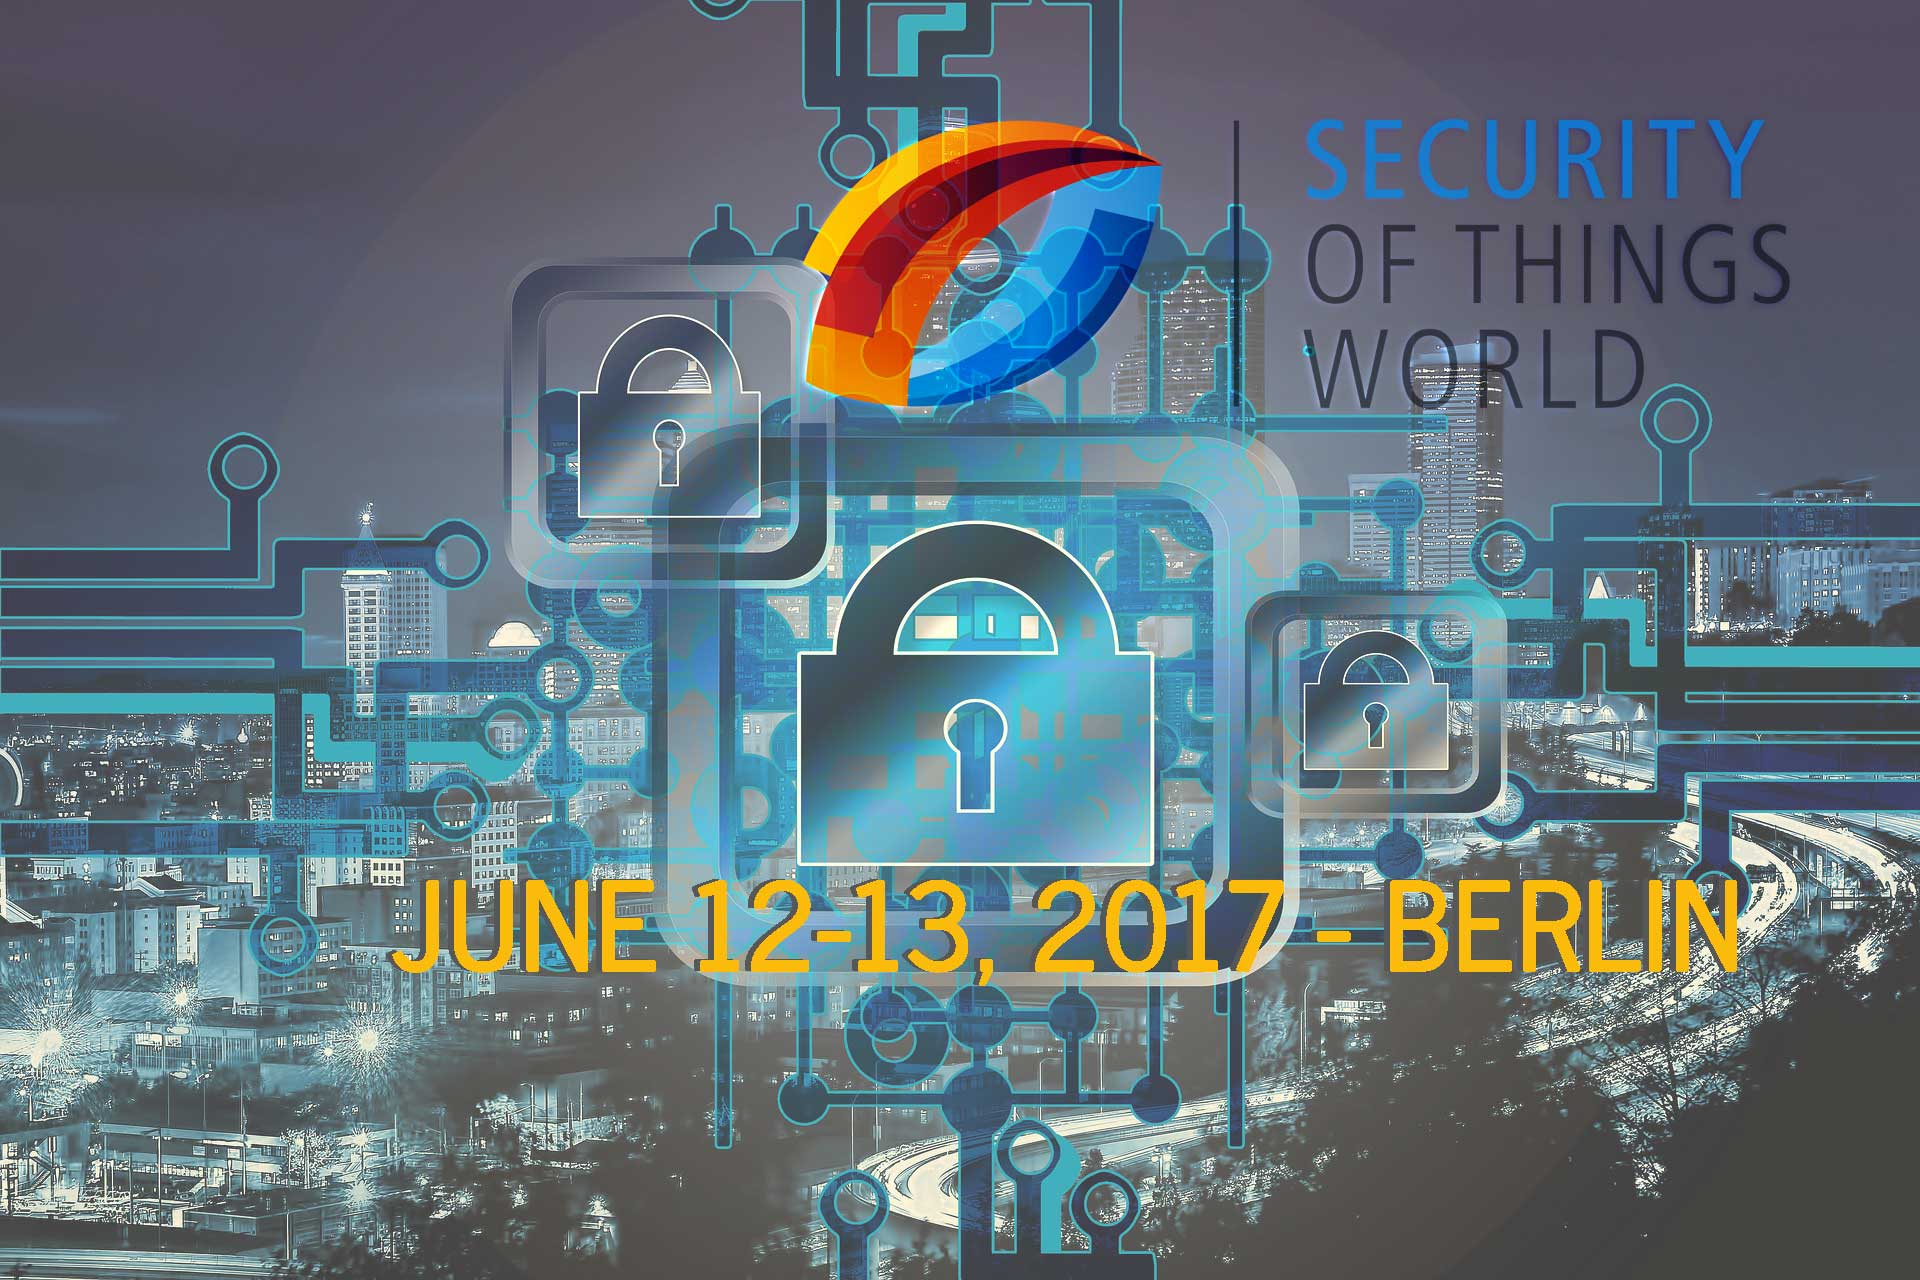 Security of Things World 2017 Industry Event Berlin June 12-13, 2017